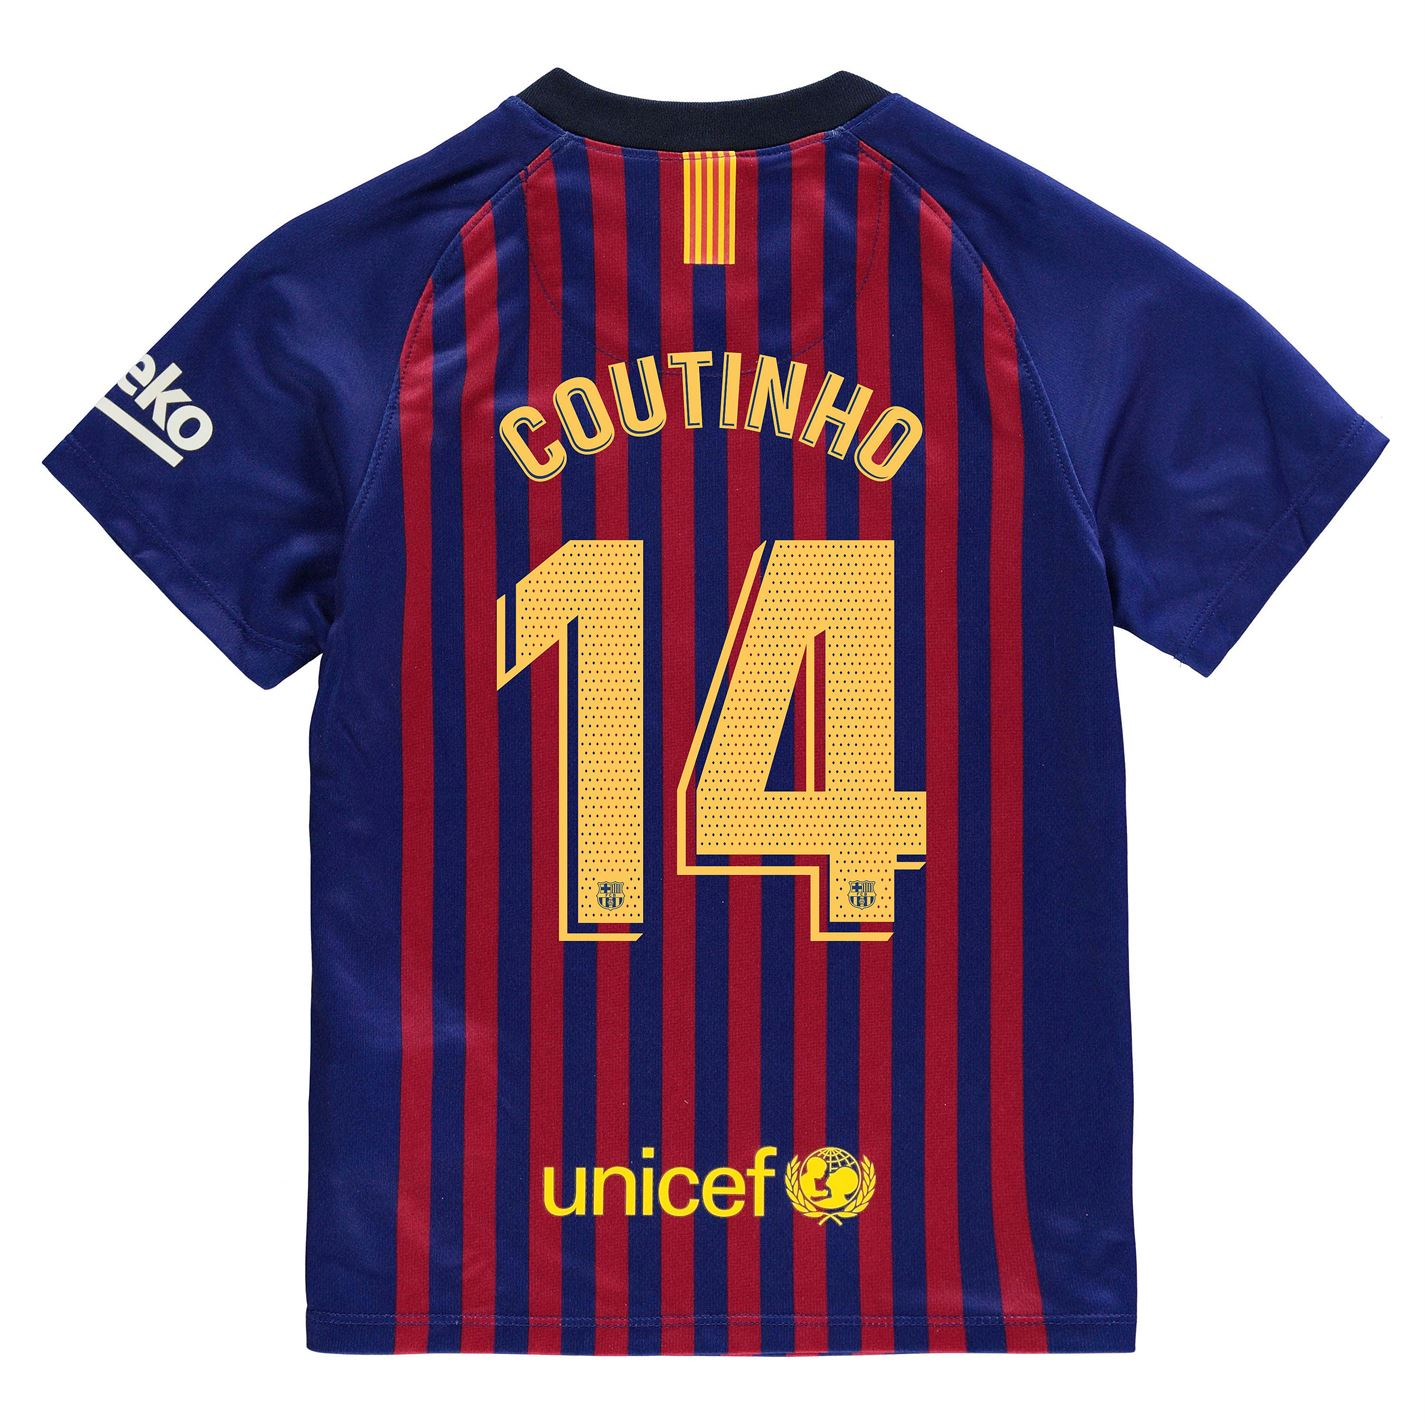 050391c4b75 Team Barcelona Luis Suarez Home Shirt 2018 2019 Junior Plava - Jeftinije.hr